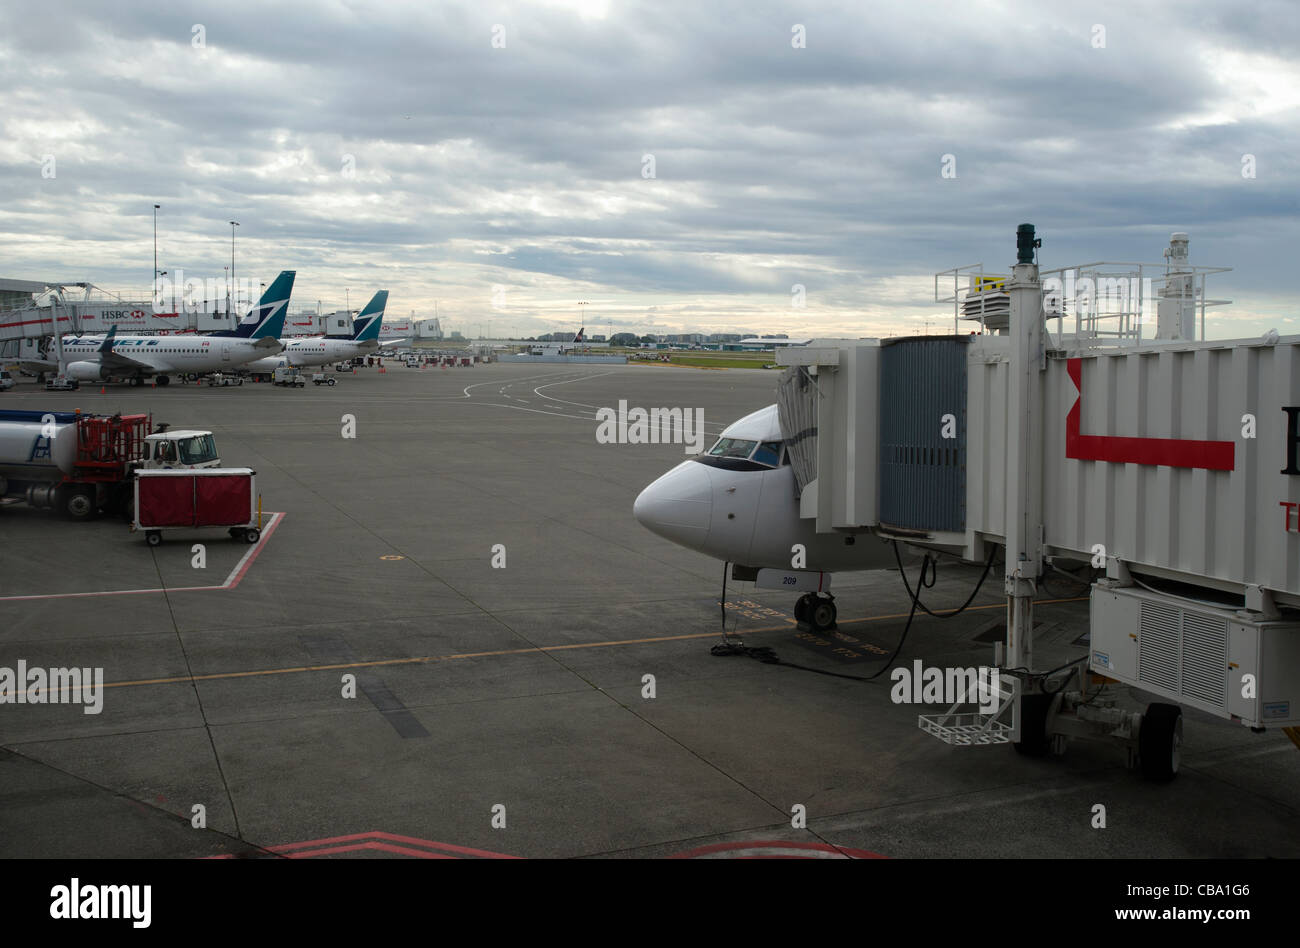 Airplane on the tarmac at the gate, international airport - Stock Image